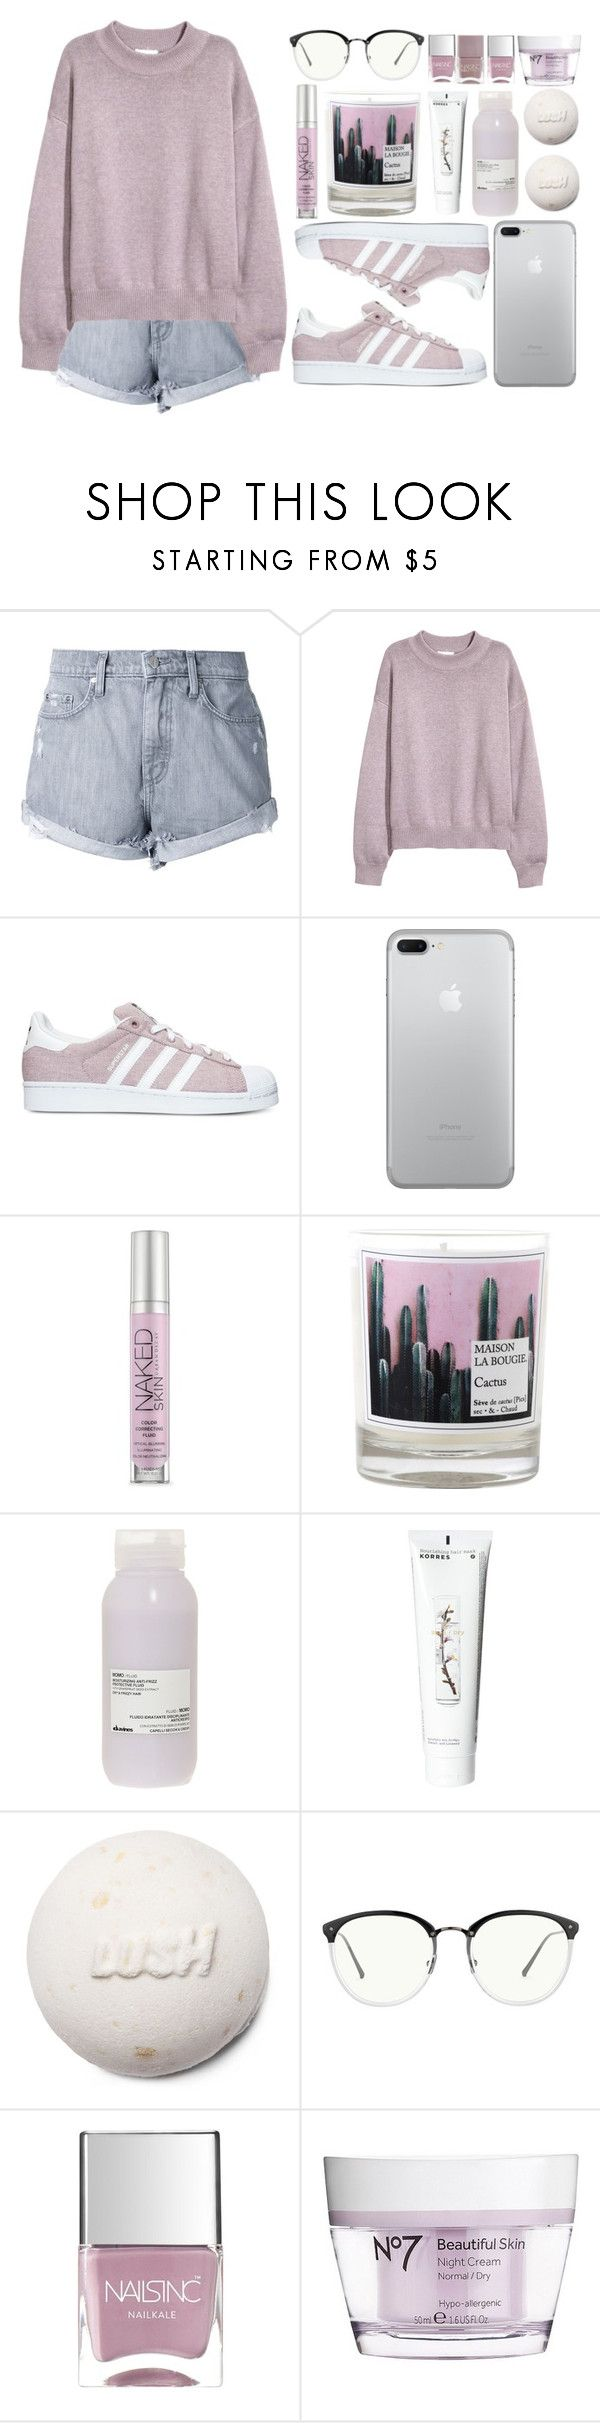 """""""Diamond Girl (Top Set 3.17.17)"""" by antisocial-vagabond ❤ liked on Polyvore featuring Nobody Denim, adidas, Urban Decay, Maison La Bougie, Davines, Korres, Linda Farrow, Nails Inc. and Boots No7"""